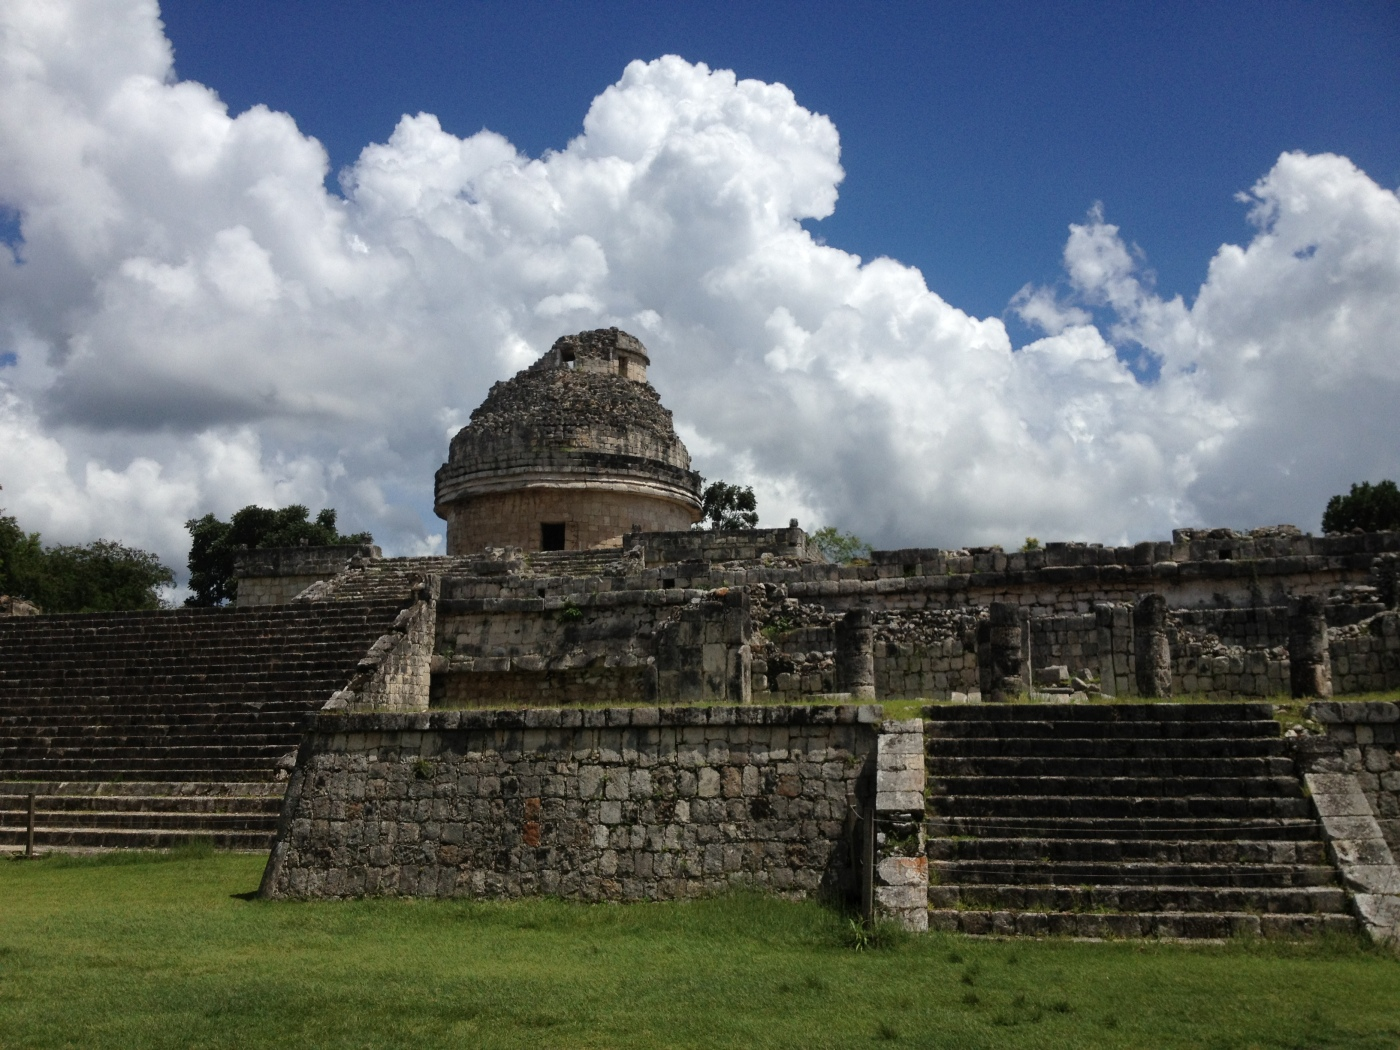 The Observatory or El Caracol, at Chichén Itzá, Yucatán & Riviera Maya.